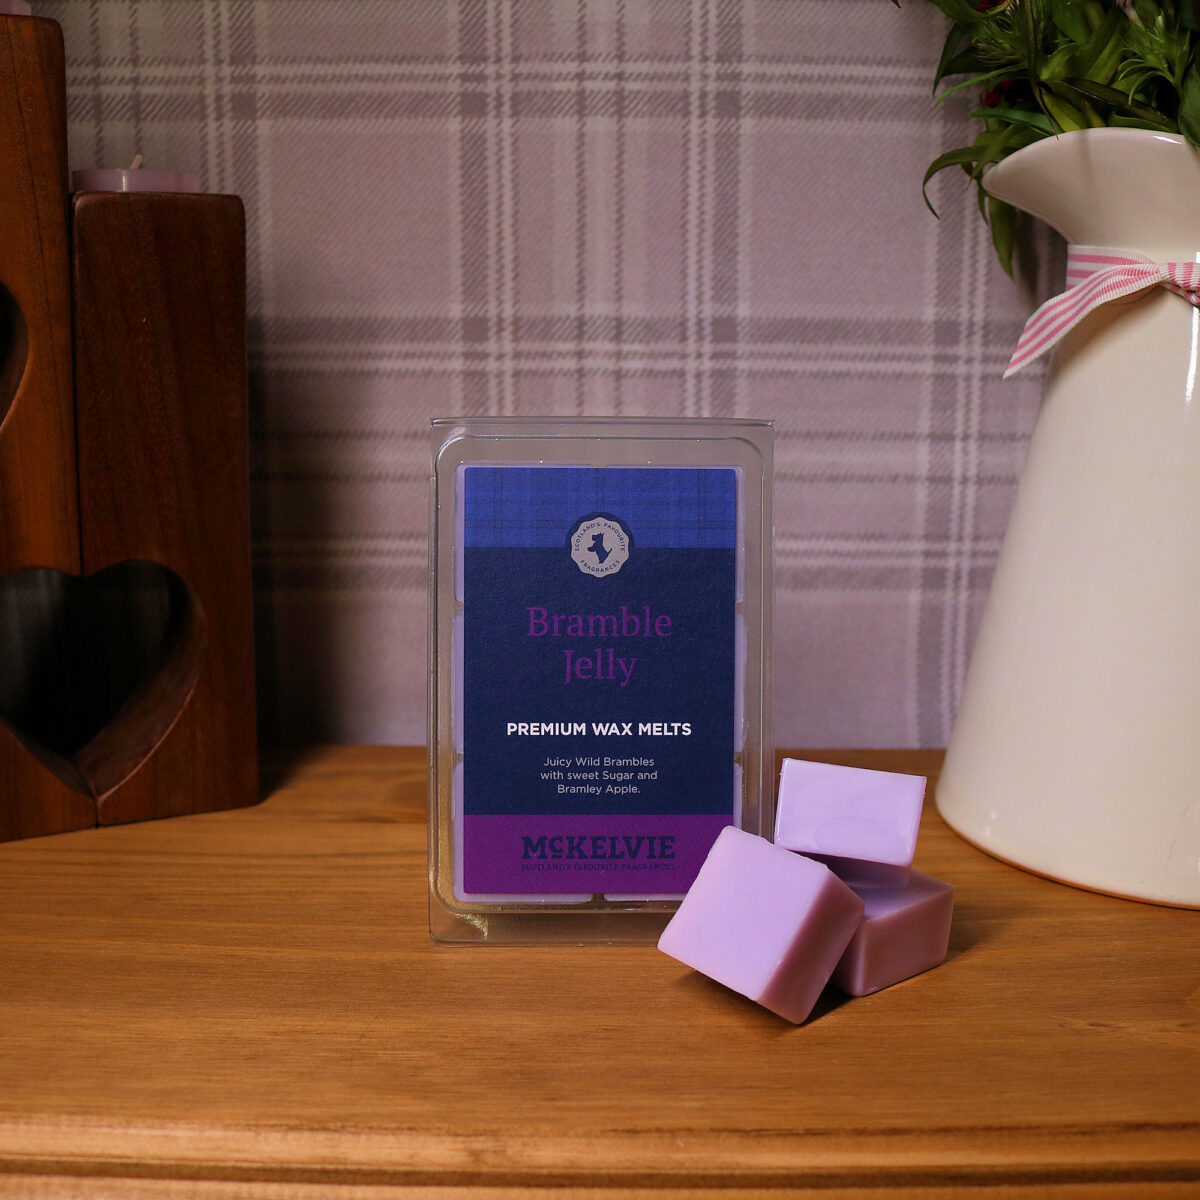 Bramble Jelly Wax Melts